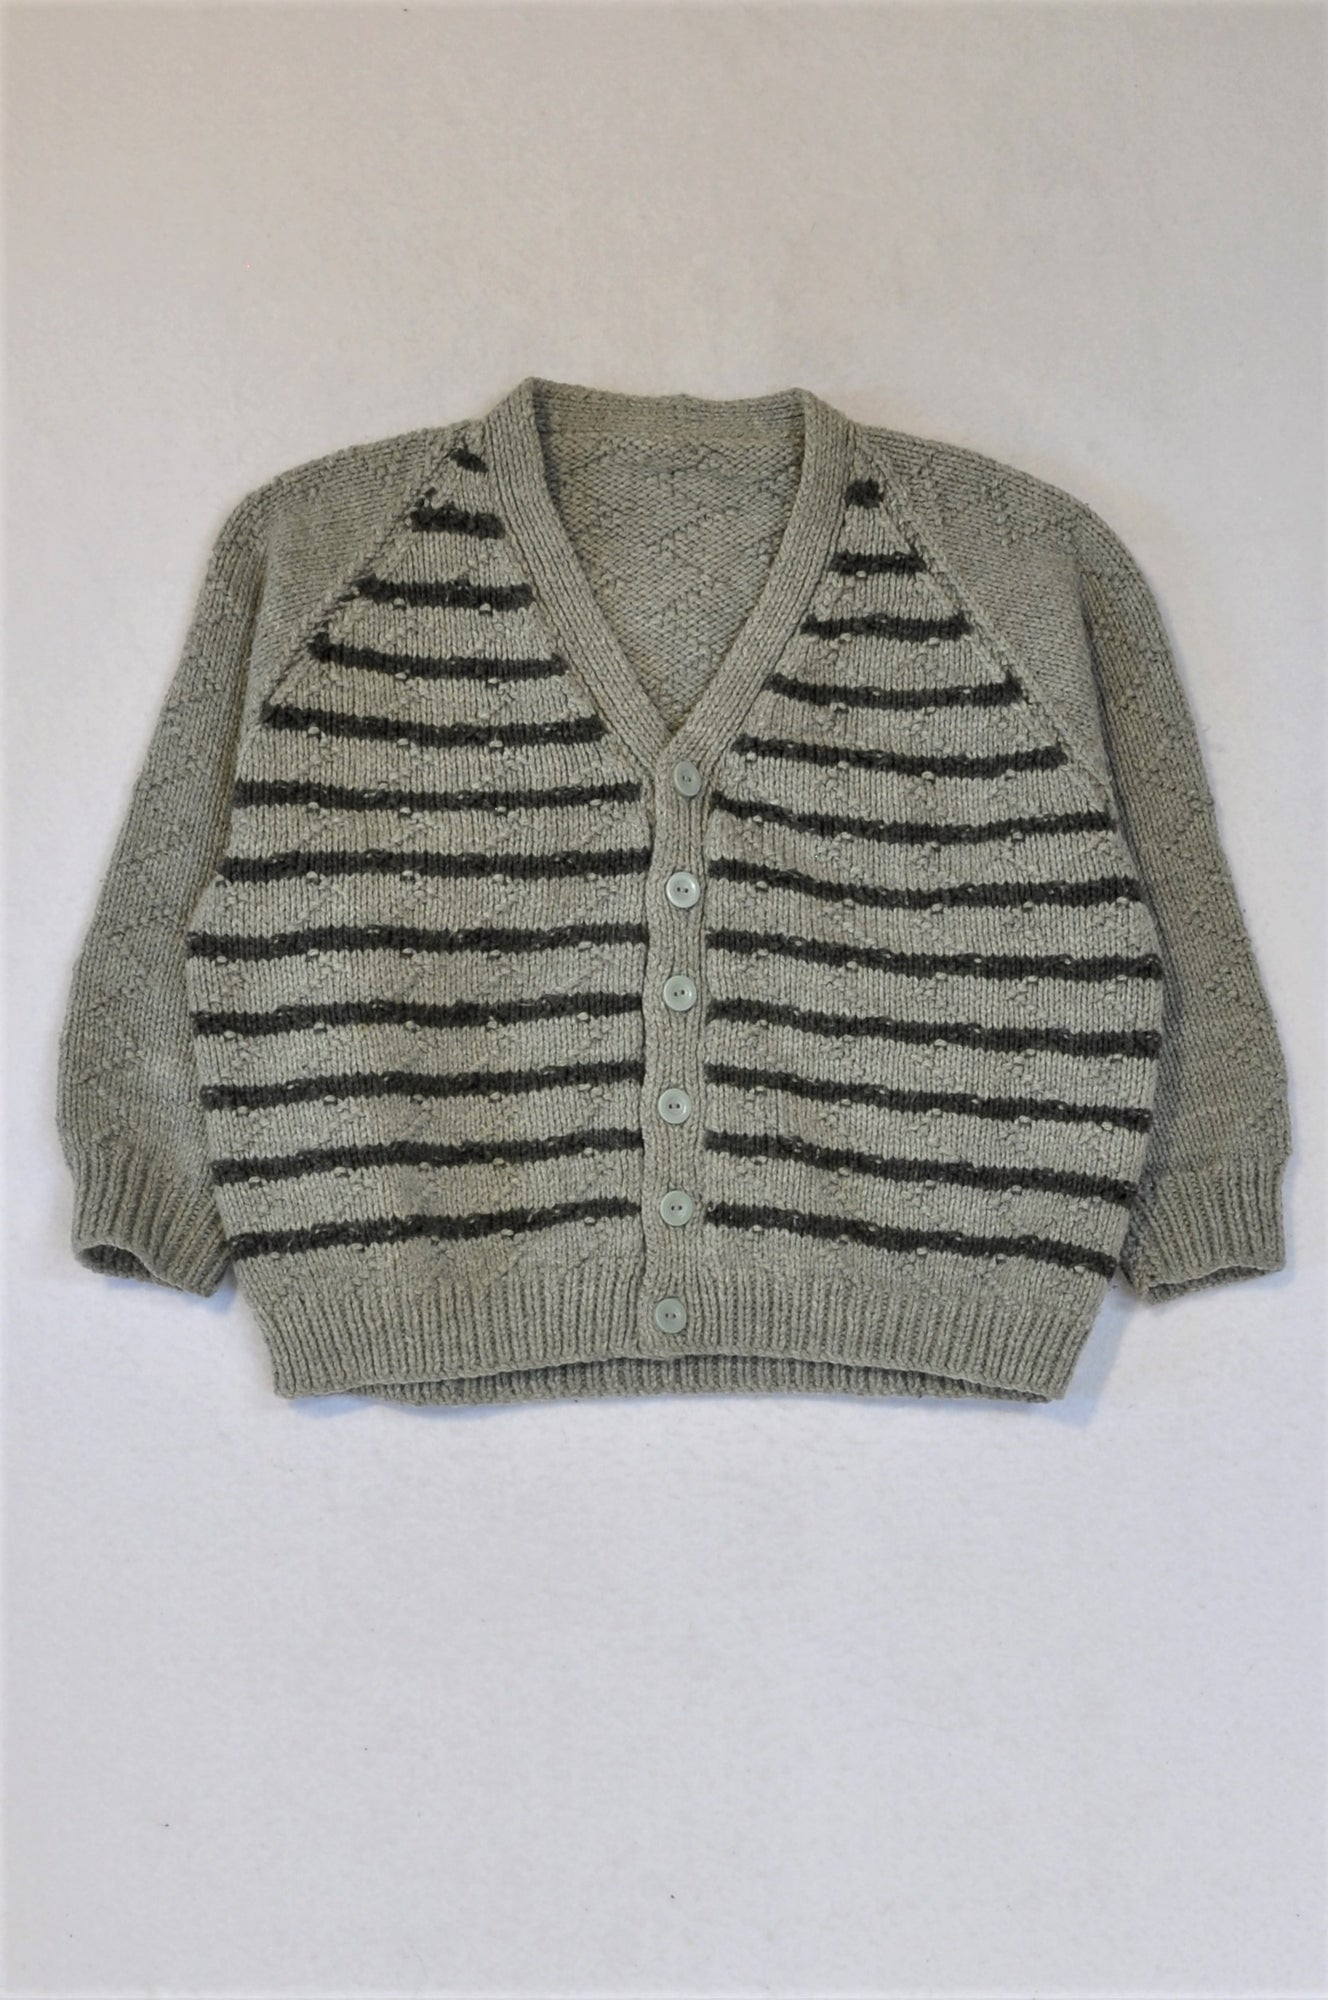 Unbranded Grey Knit Cardigan Jersey Boys 7-8 years